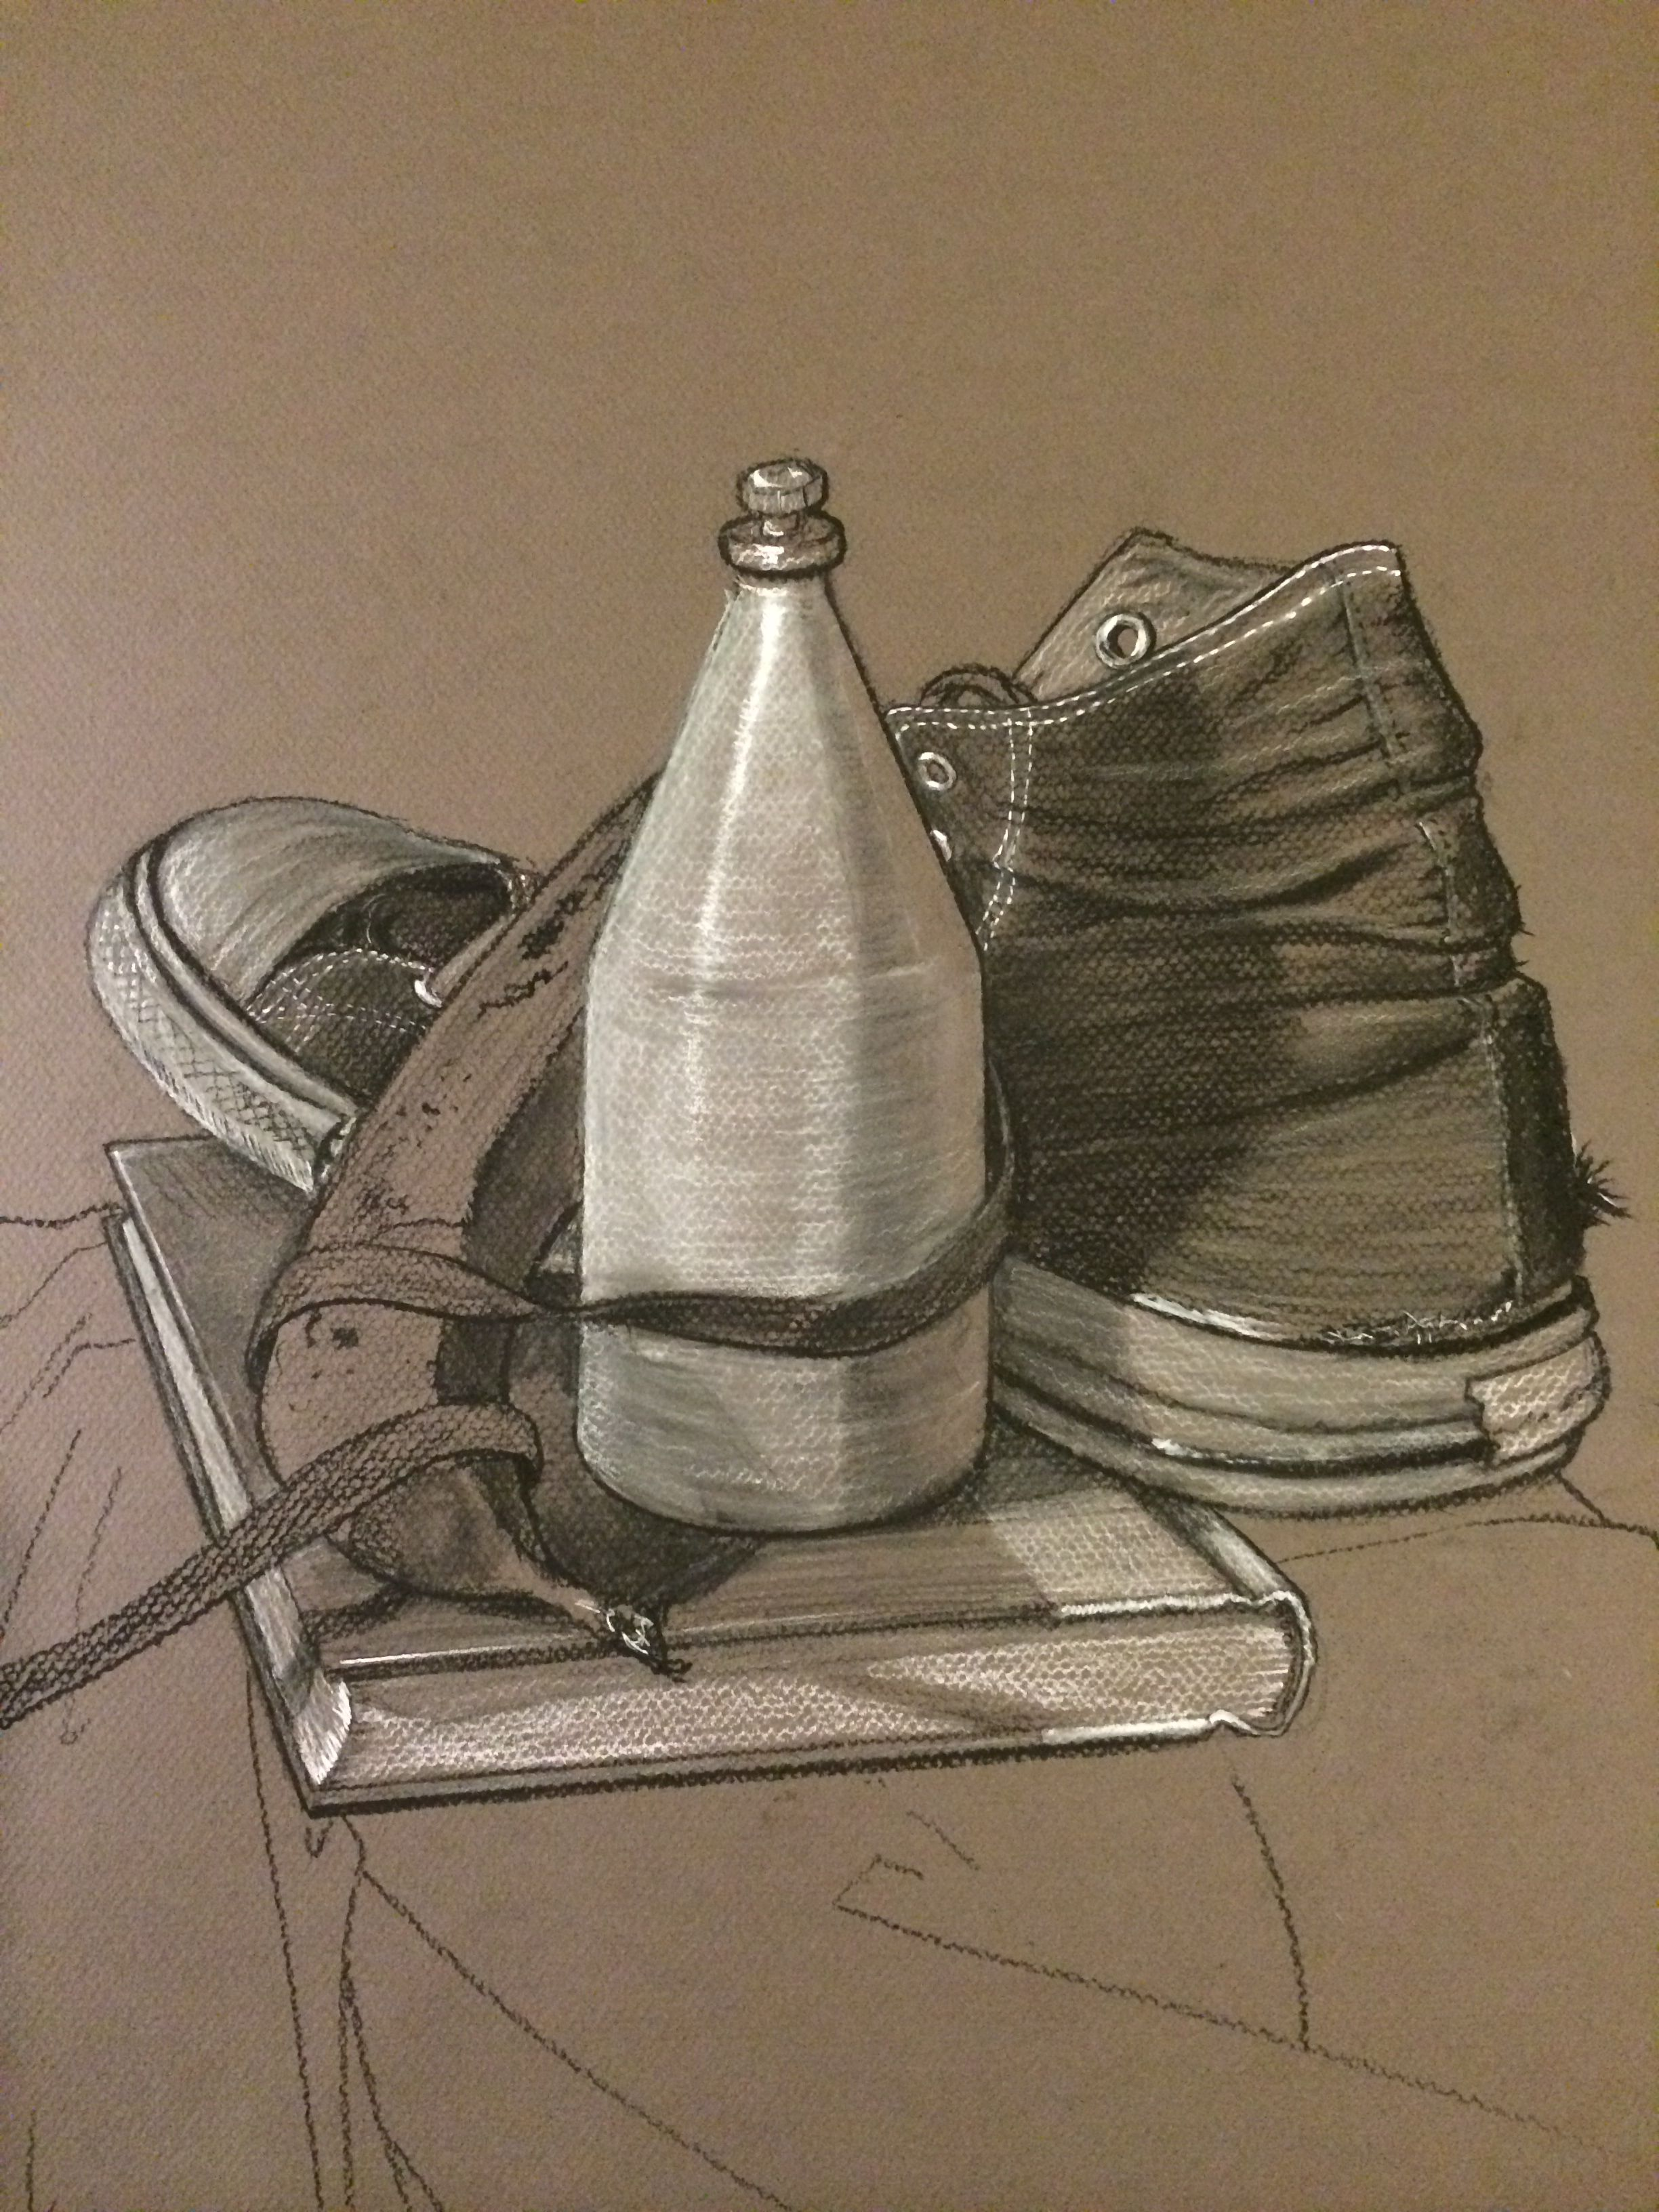 Charcoal Drawing Of Still Life Including Old Spice And